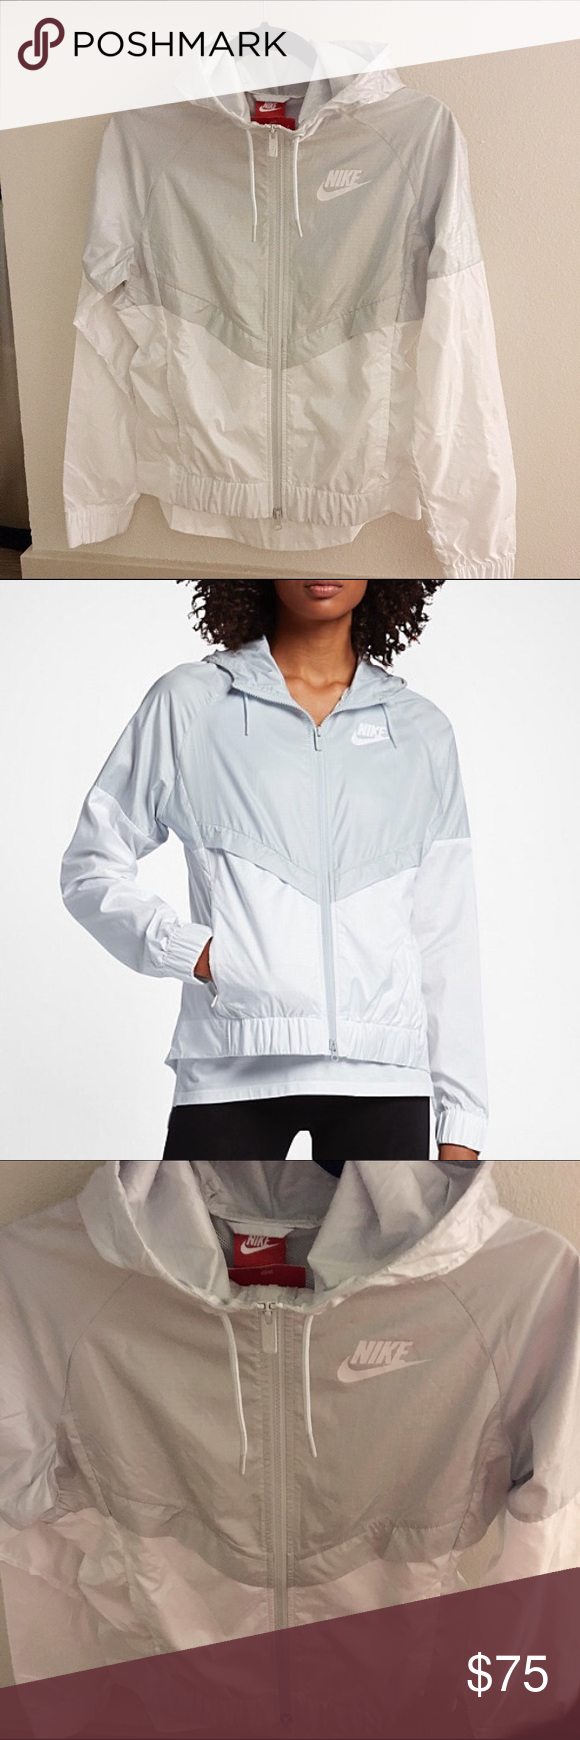 9493c950780259 NWT Nike Women s Sportswear Windrunner Jacket New w tags  804947. XSmall. Pure  Platinum White  White. polyester. Dropped hem for more coverage.